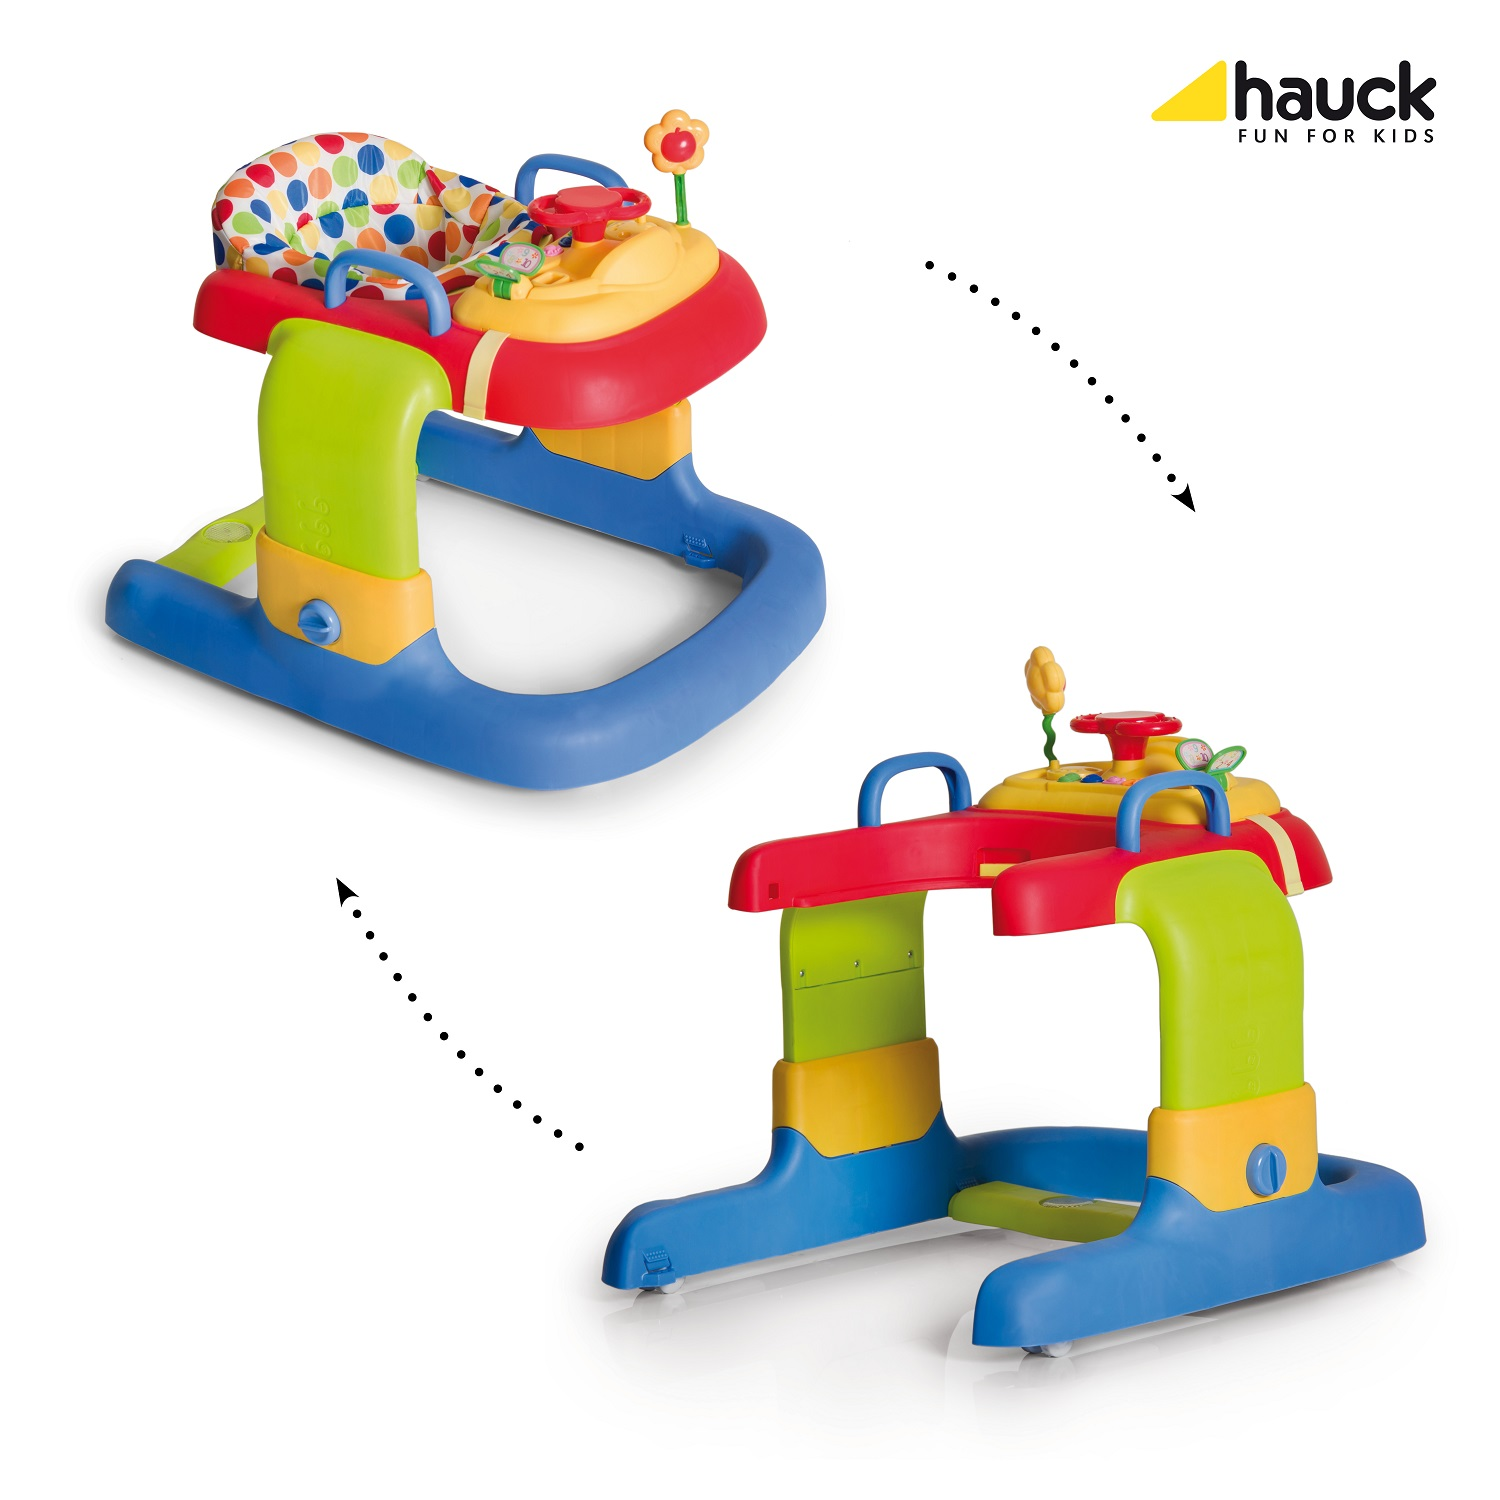 Hauck 2 in 1 Baby Walker 2017 - Buy at kidsroom | Toys ...